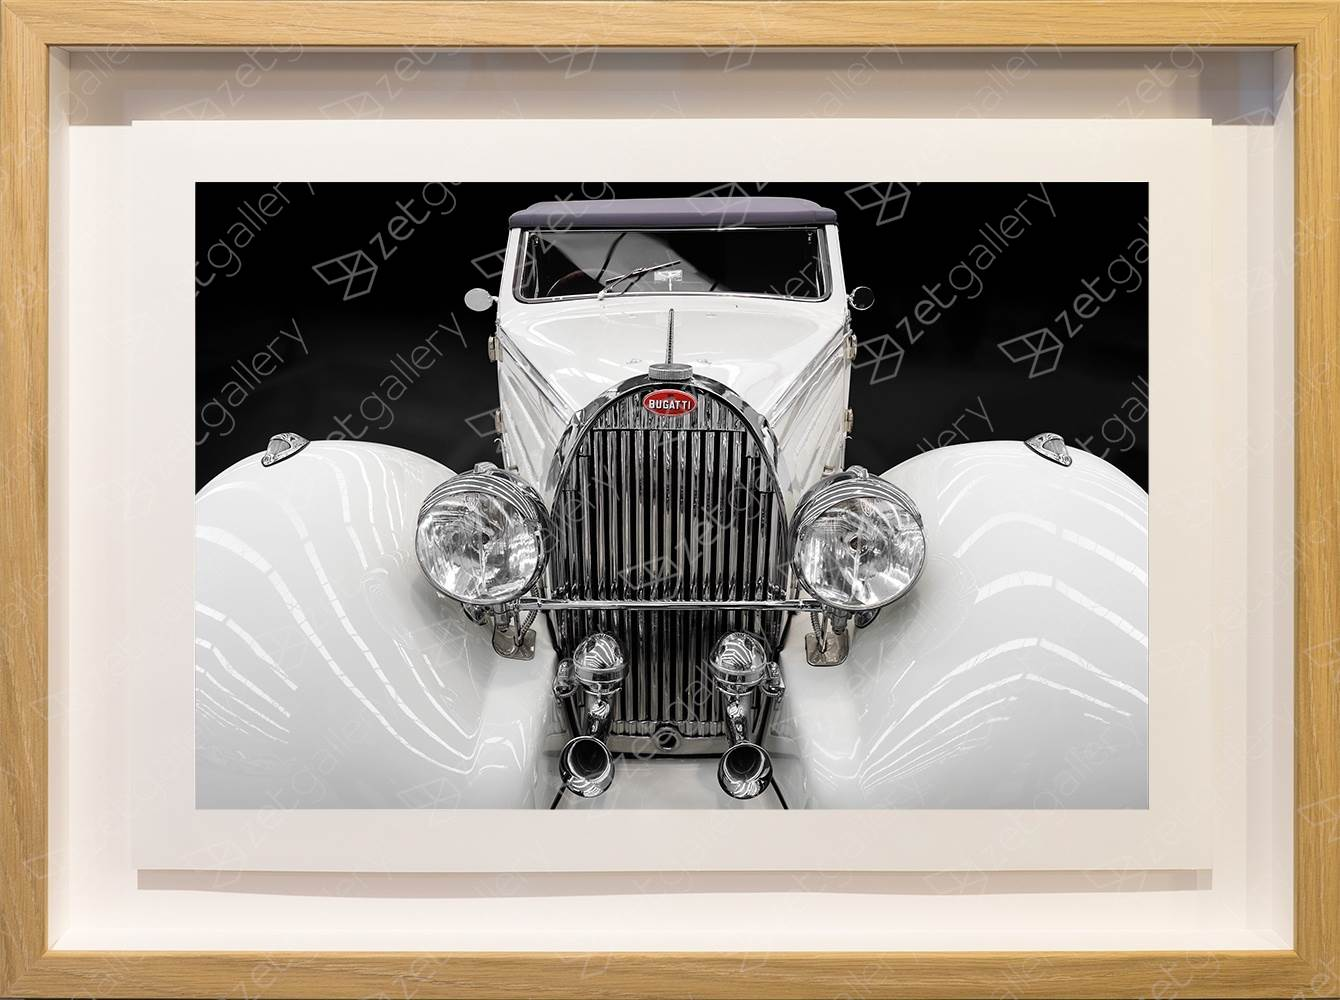 Bugatti Type 57 Stelvio Cabriolet 01, original Avant-Garde Digital Photography by Yggdrasil Art